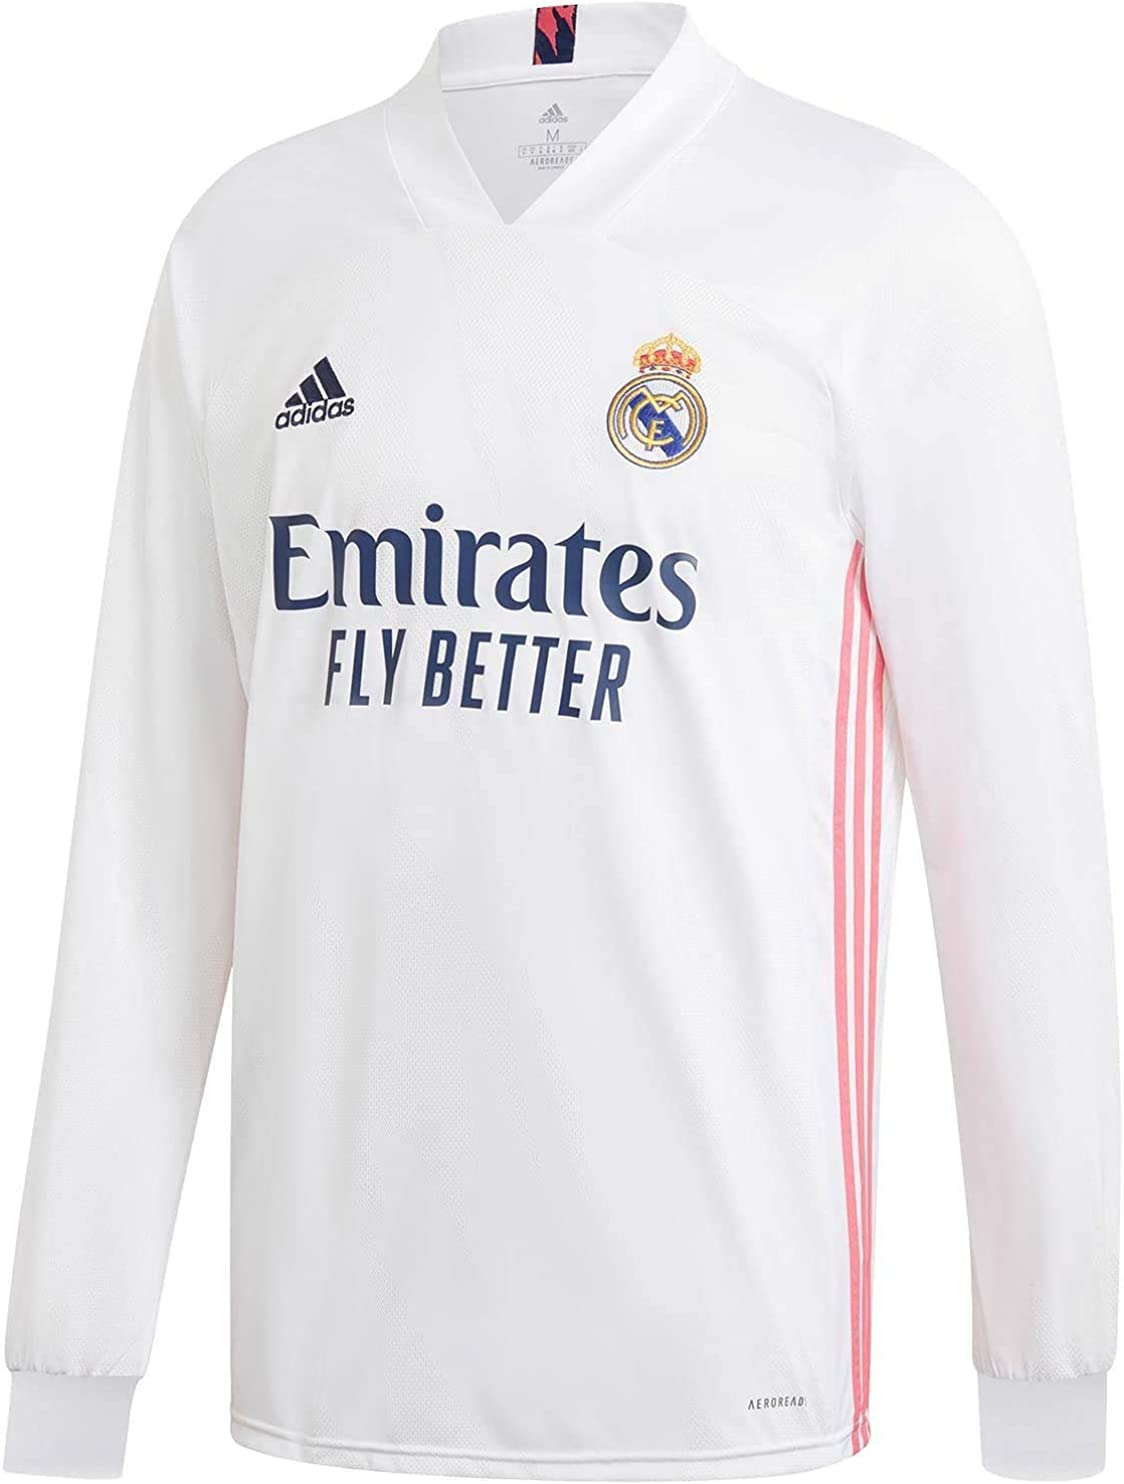 adidas Real Madrid CF Home Men's Long Sleeve Soccer Jersey- 2020/21 (Large)